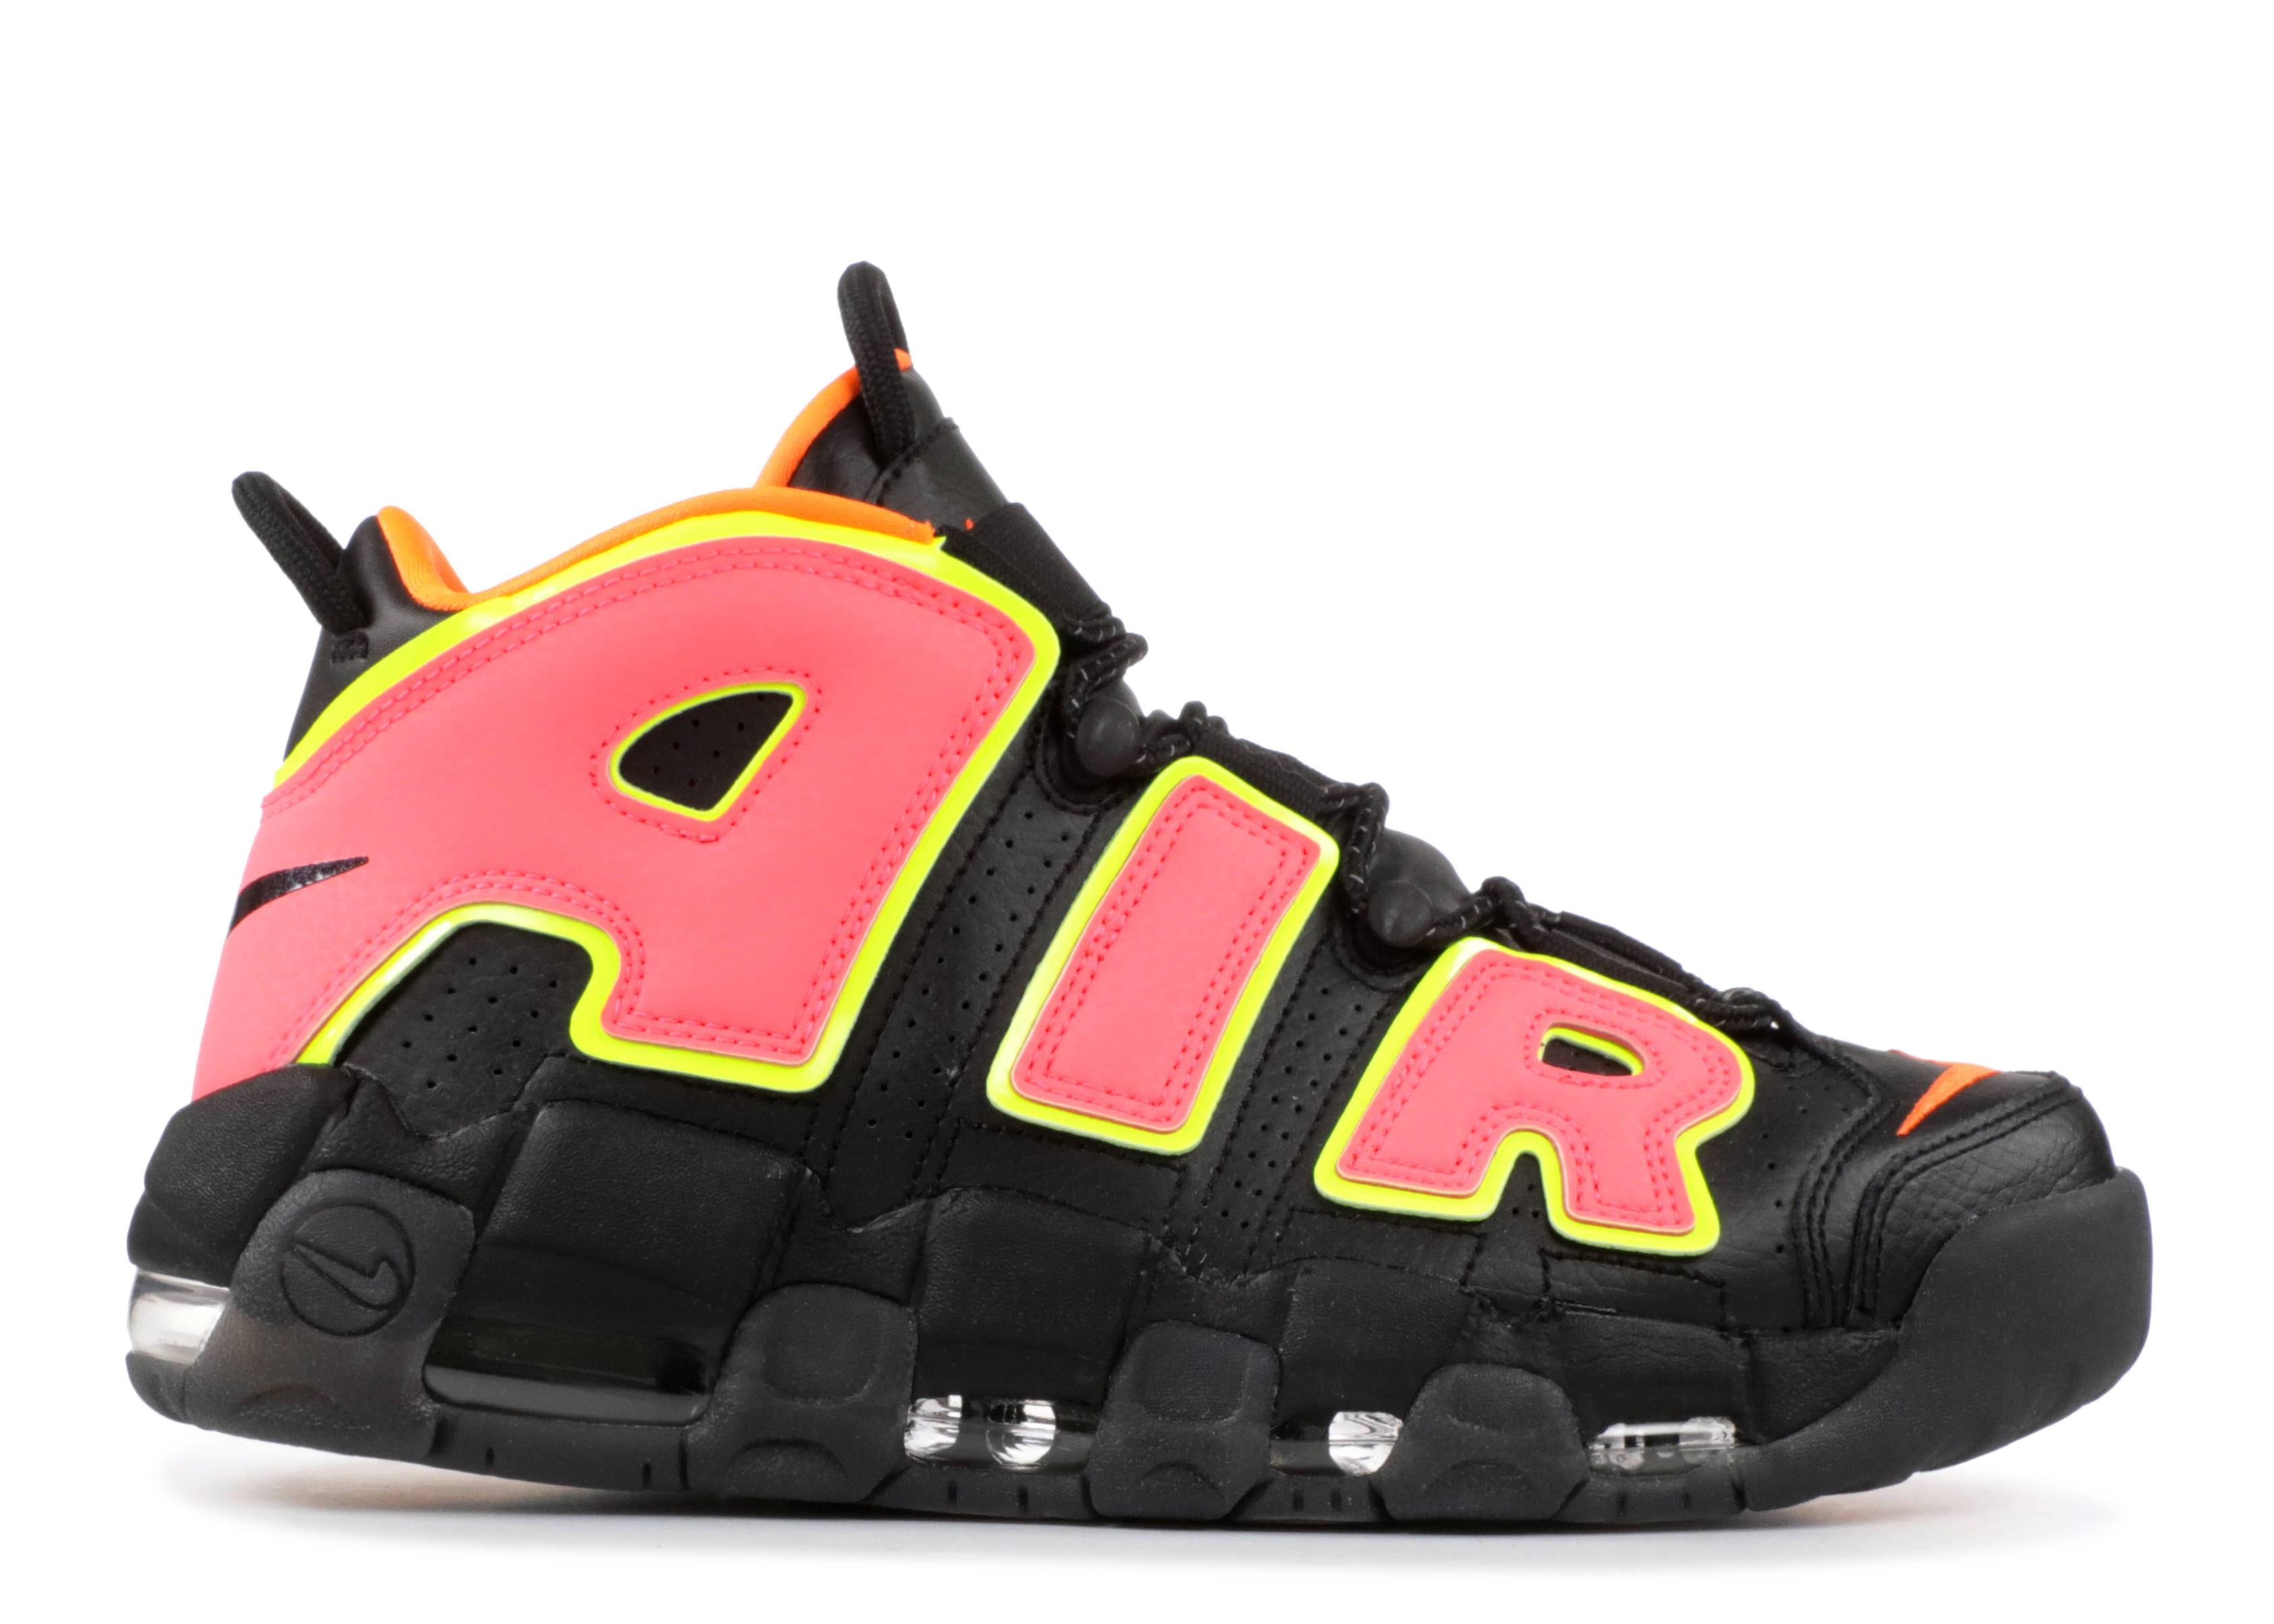 W Nike Air More Uptempo - Nike - 917593 002 - black hot pink pinch ... 34ce7ed5a